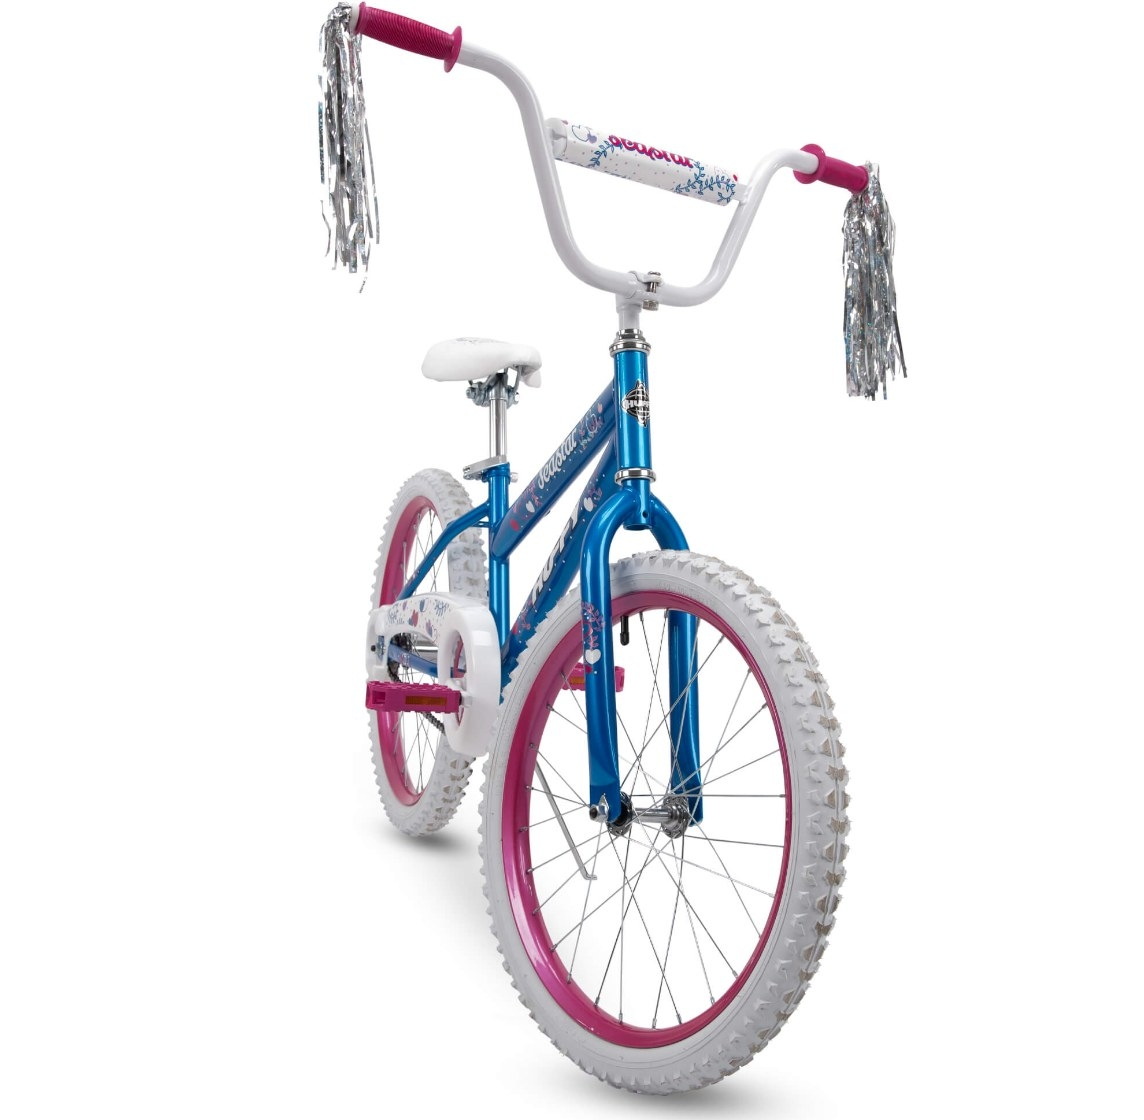 The bike with white handles and a blue frame